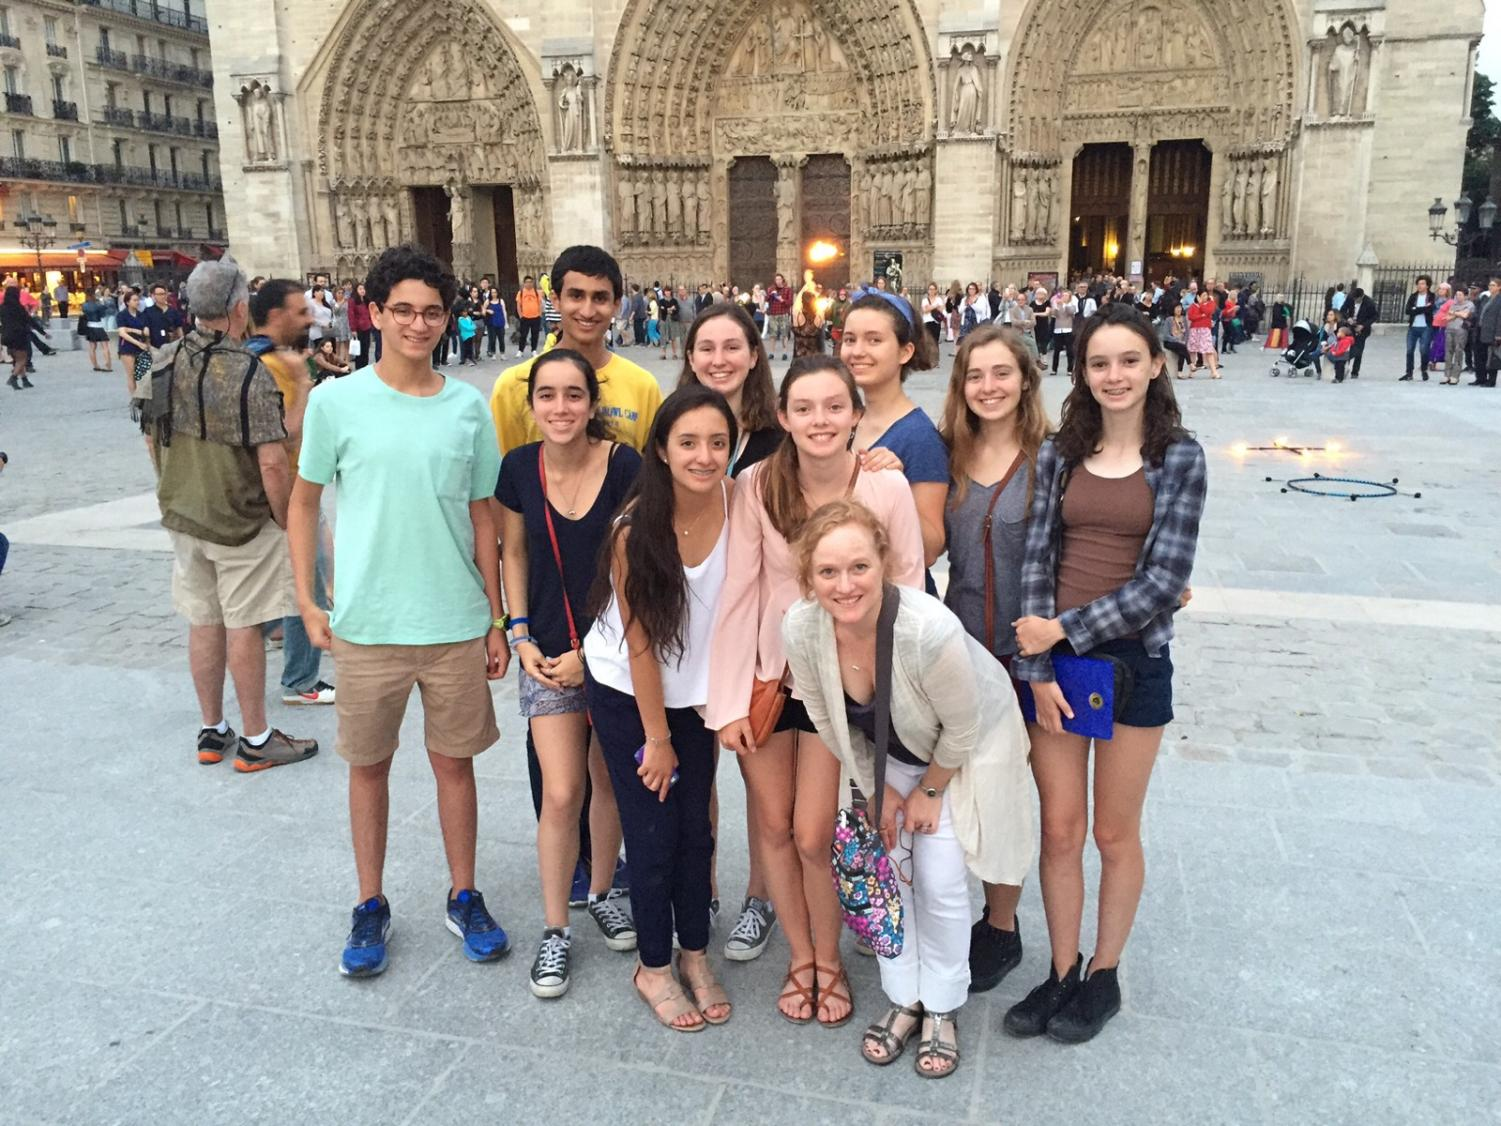 French students visited the cathedral on their trip to Paris in 2016.